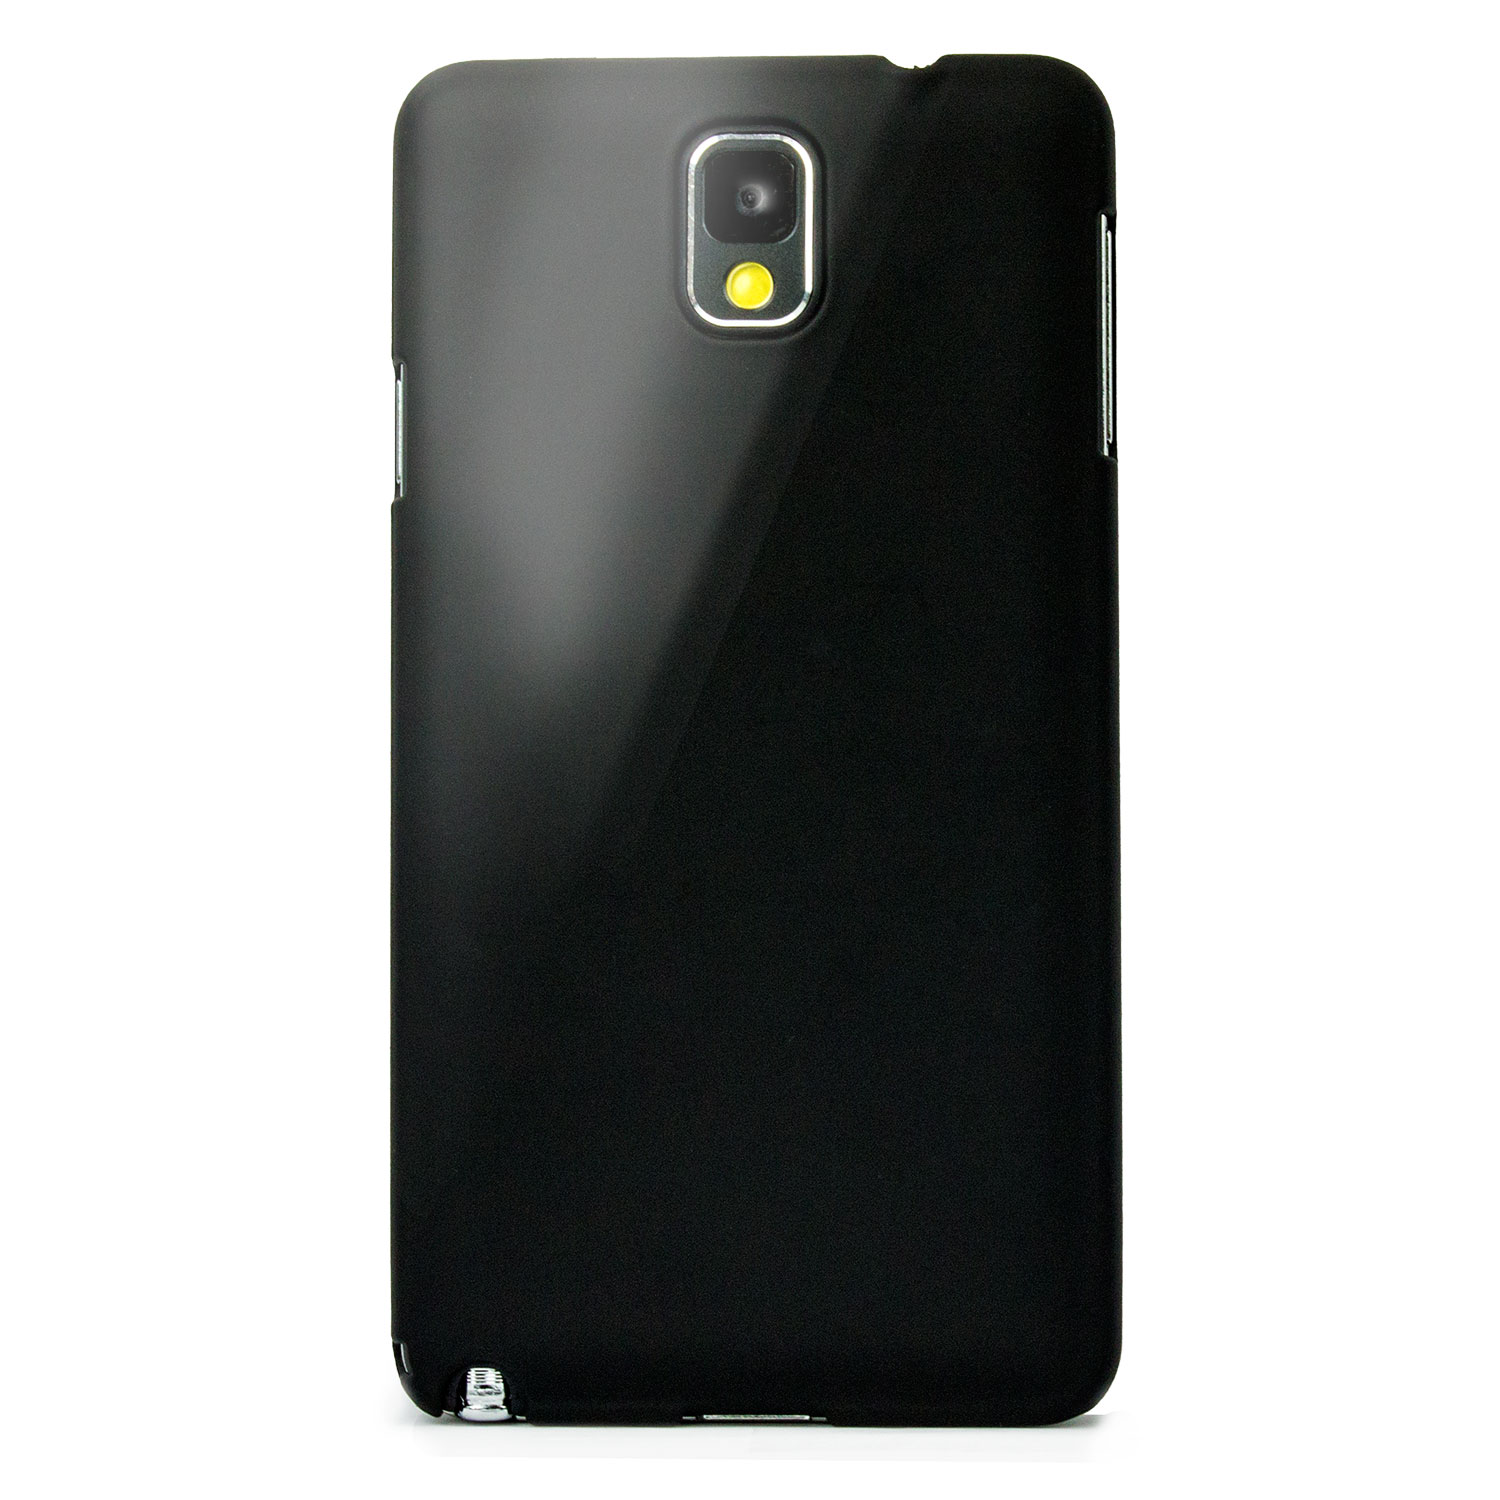 ToughGuard Shell for Samsung Galaxy Note 3 - Black